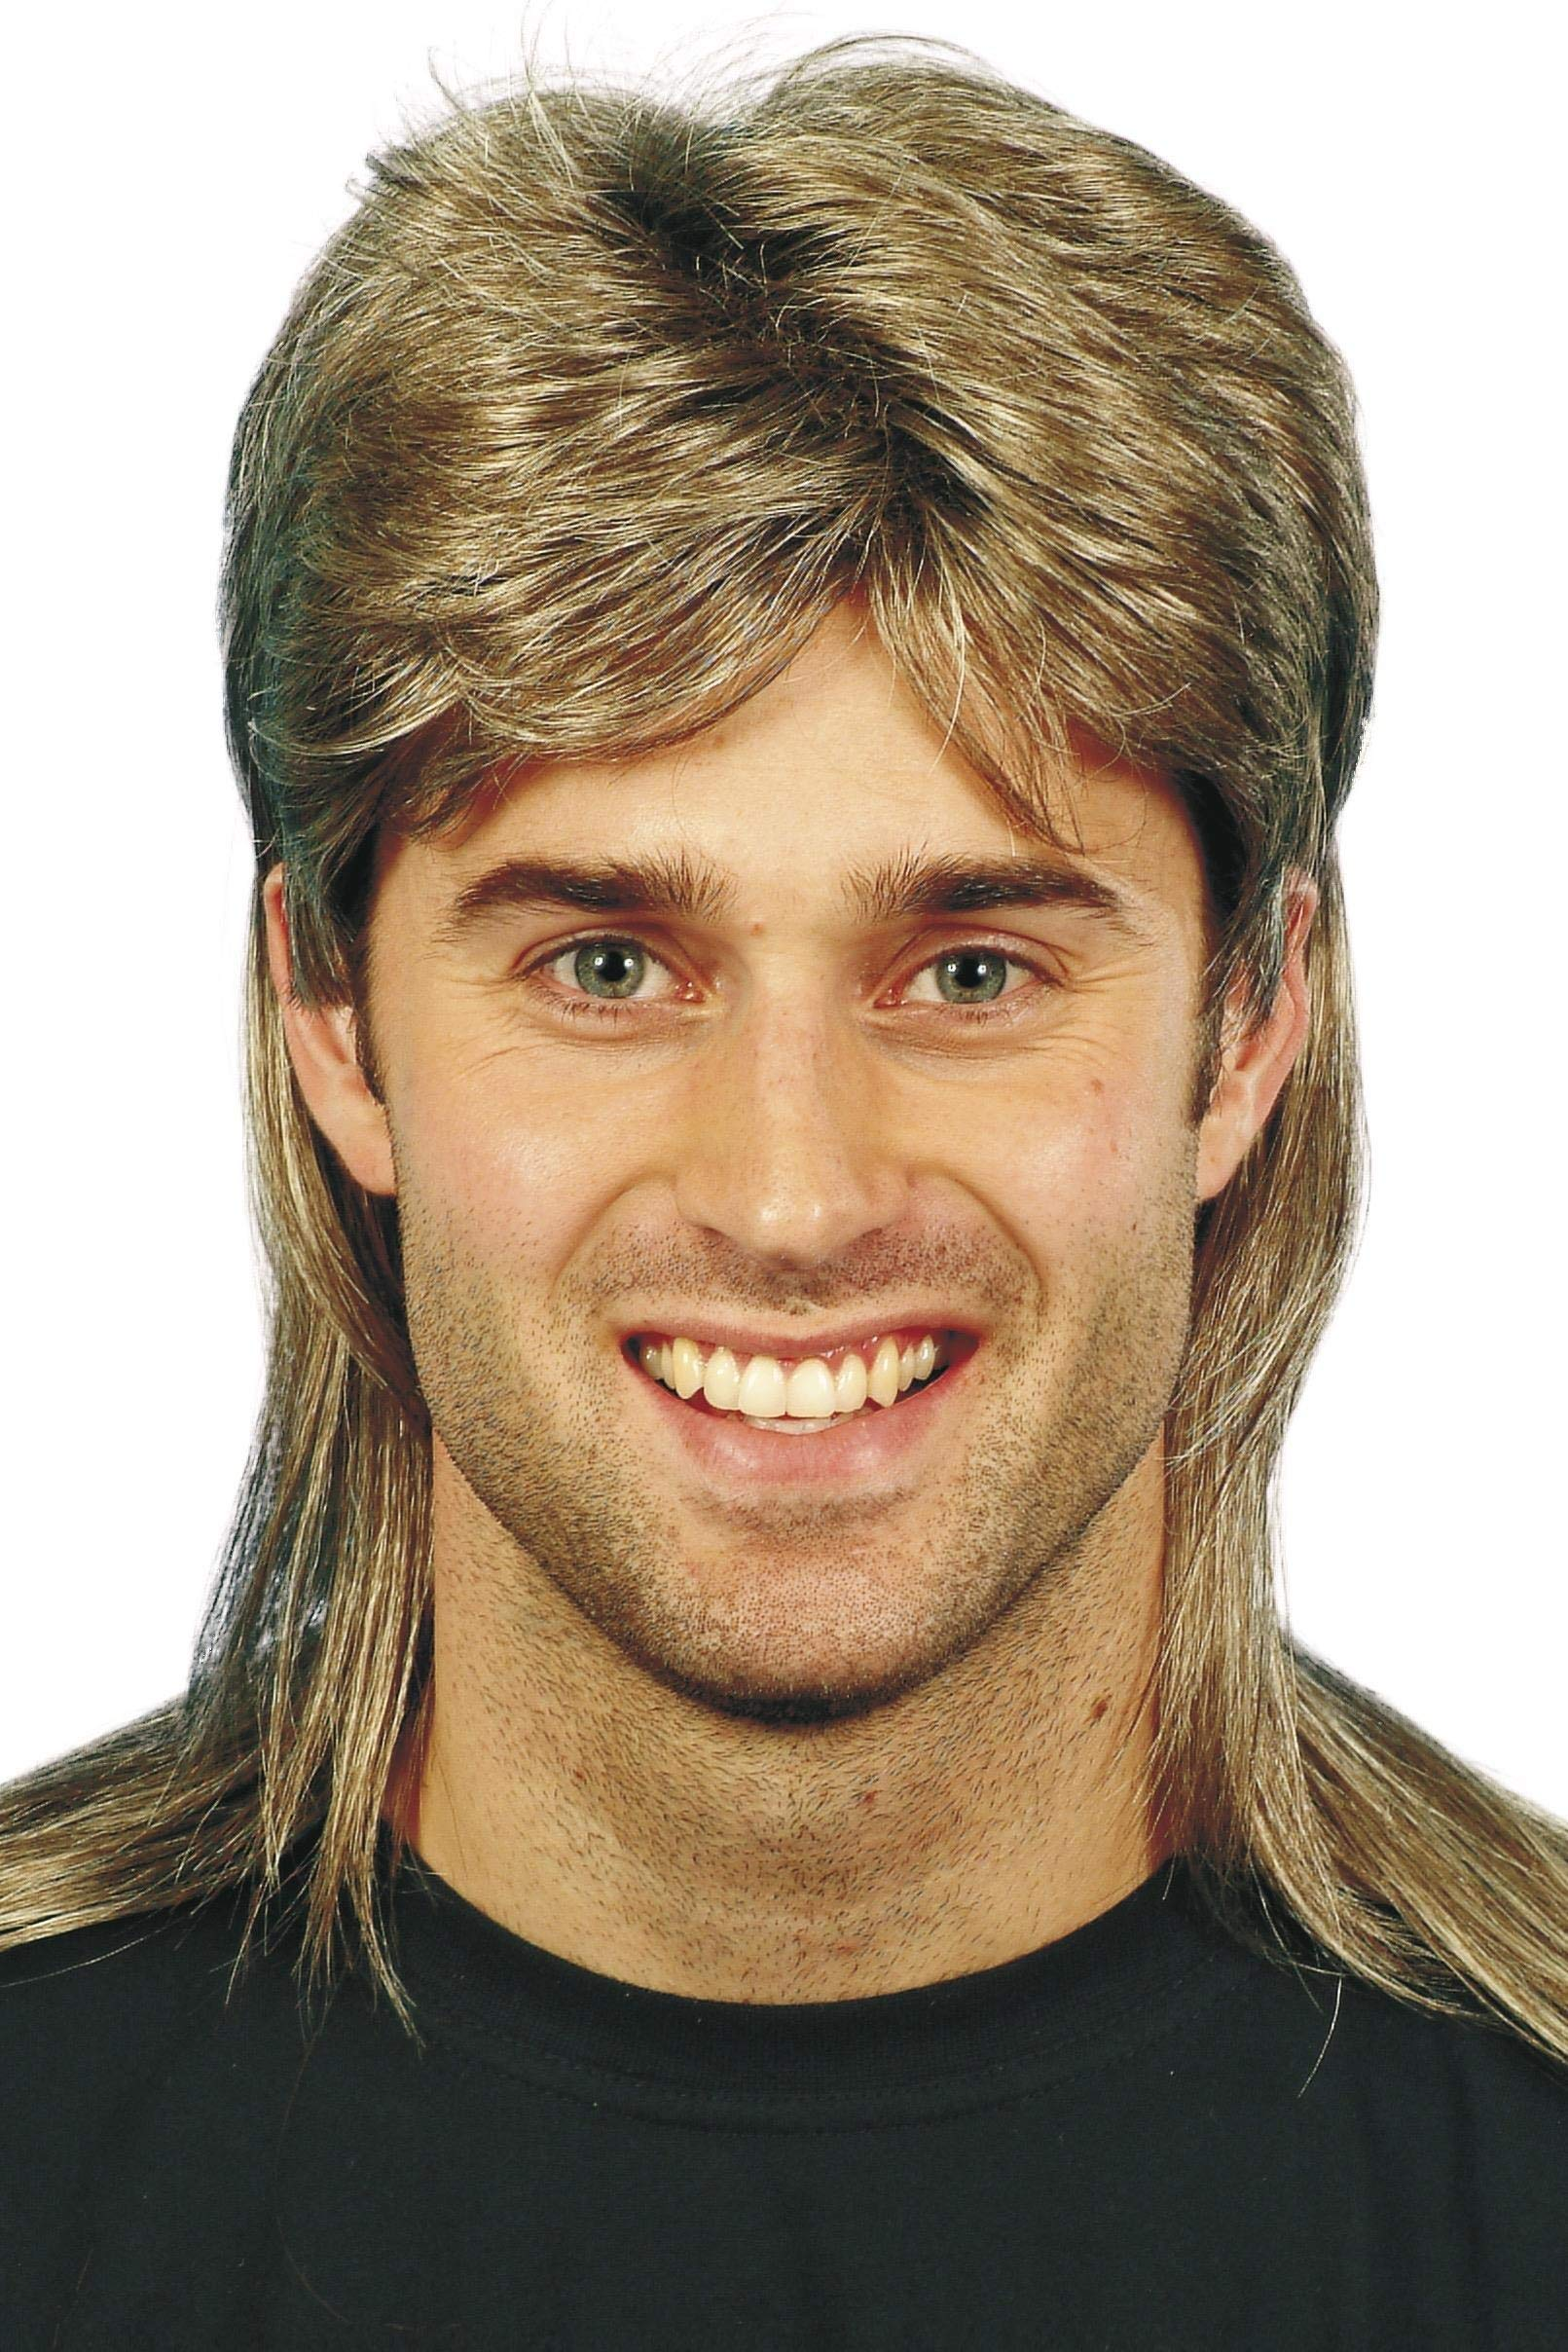 Smiffys Men's Brown Mullet Wig with Blonde Highlights, One Size, 5020570421963